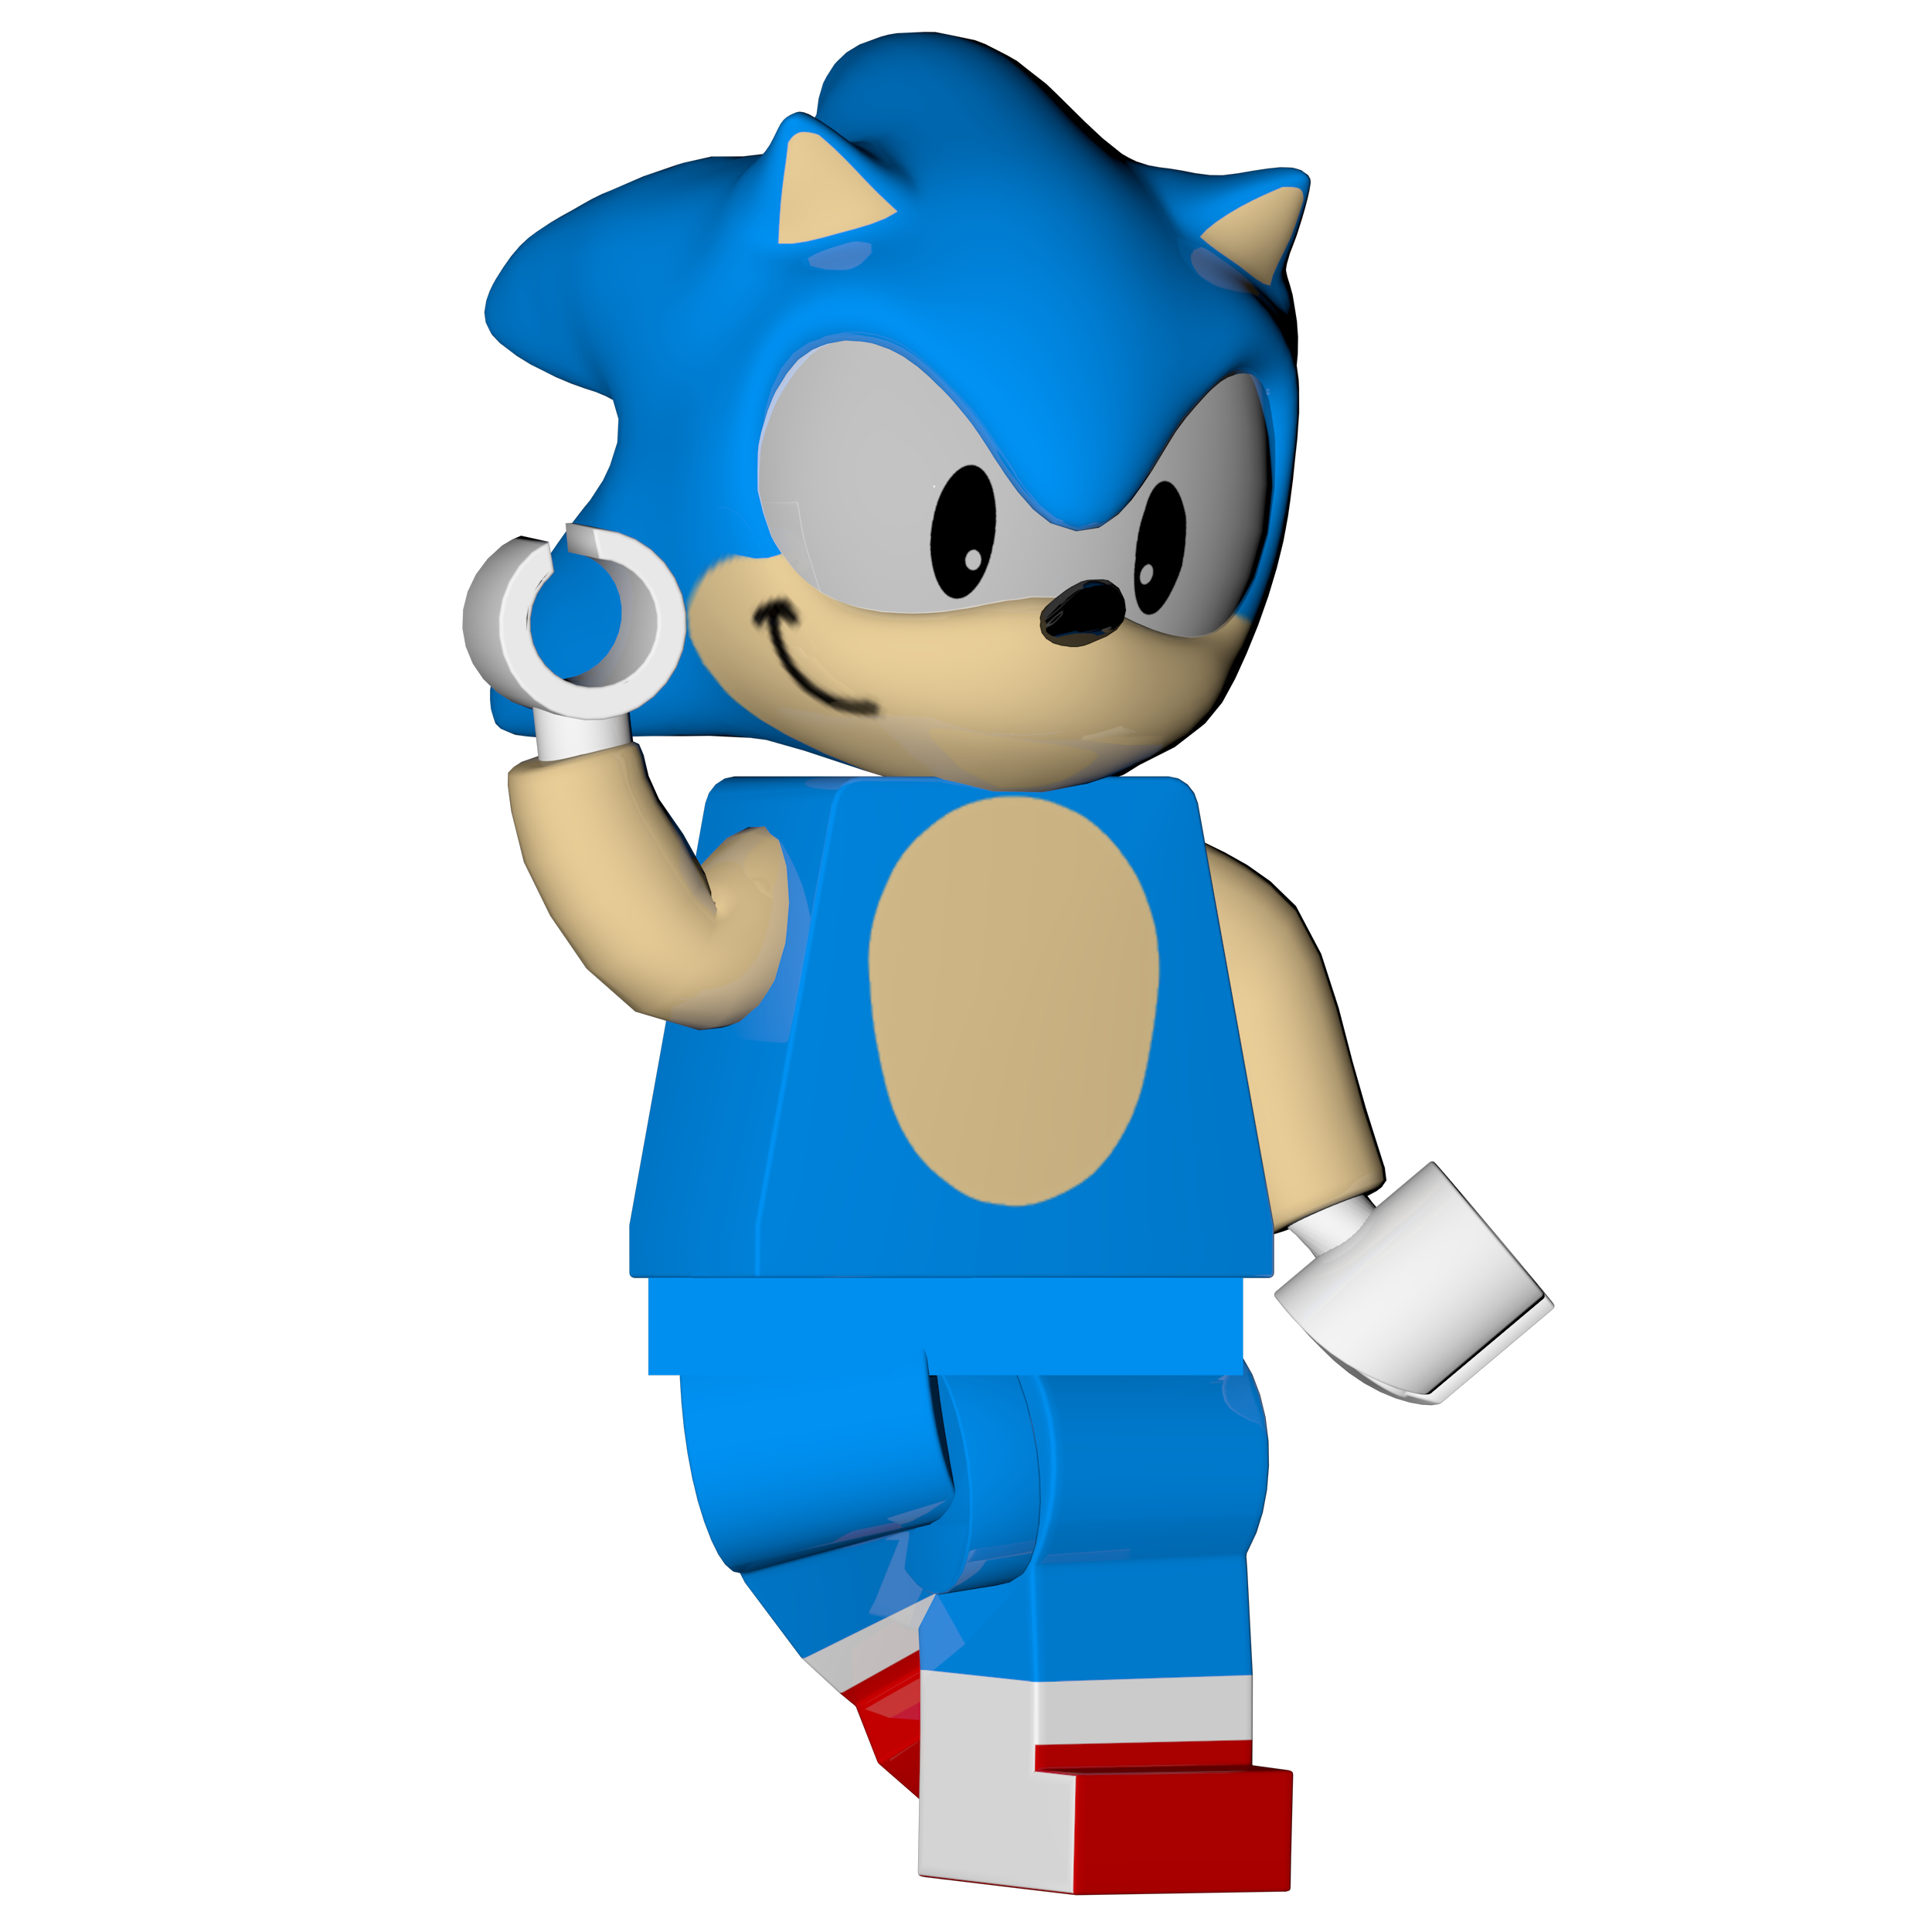 Lego Classic Sonic Render Lego Dimensions By Soniconbox On Deviantart